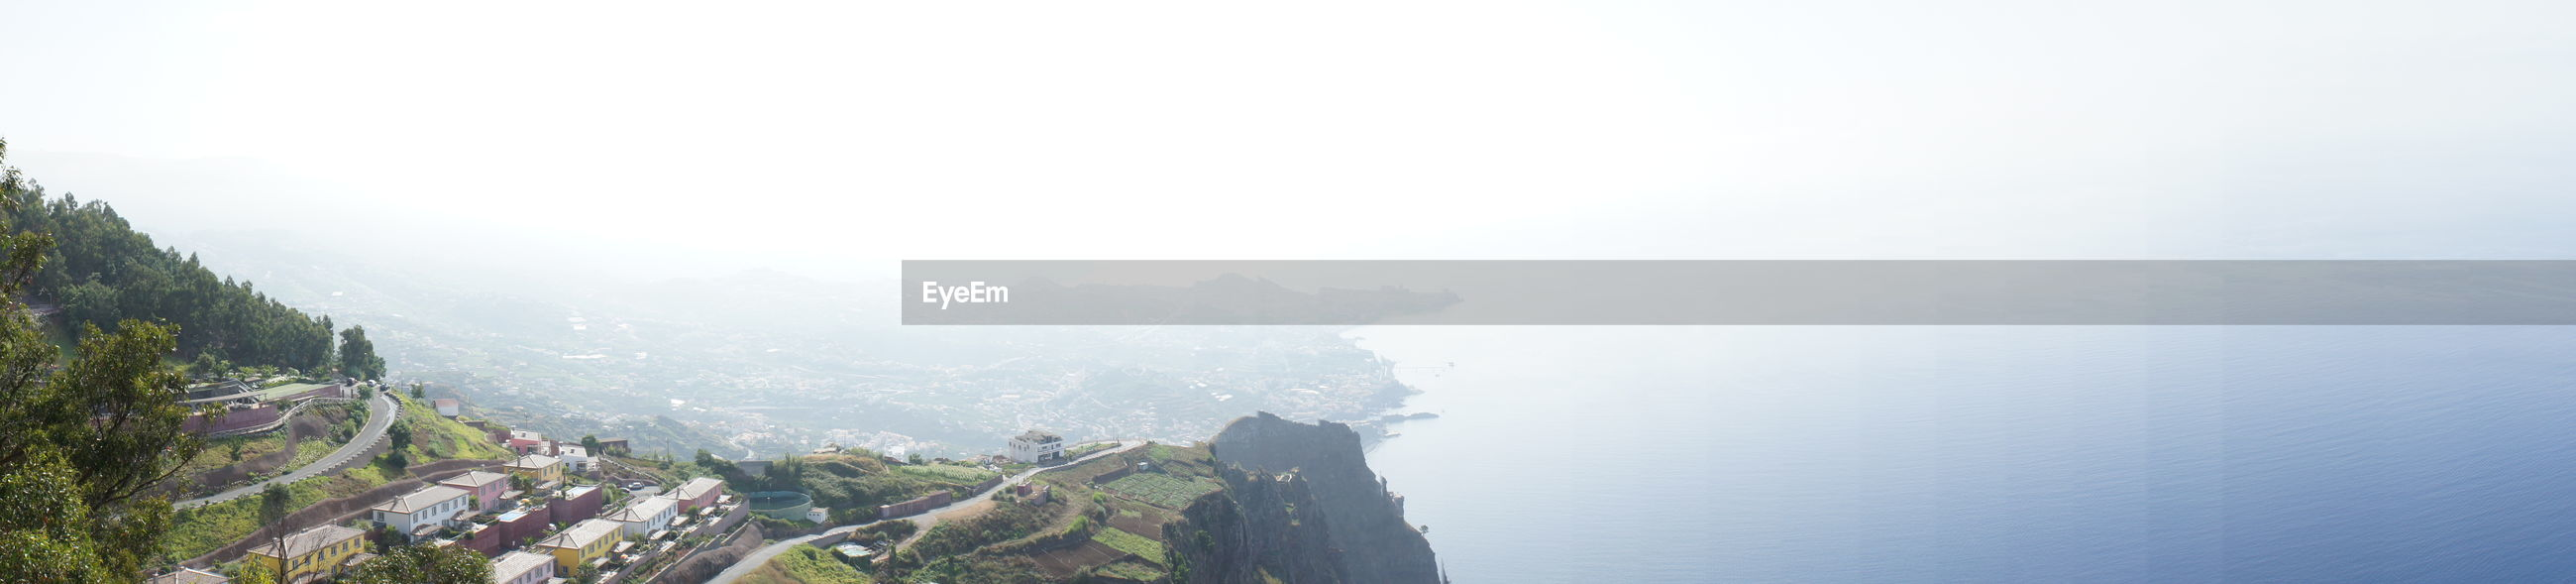 fog, scenics, mountain, beauty in nature, tranquil scene, tranquility, copy space, nature, foggy, water, weather, idyllic, high angle view, sky, sea, day, landscape, non-urban scene, outdoors